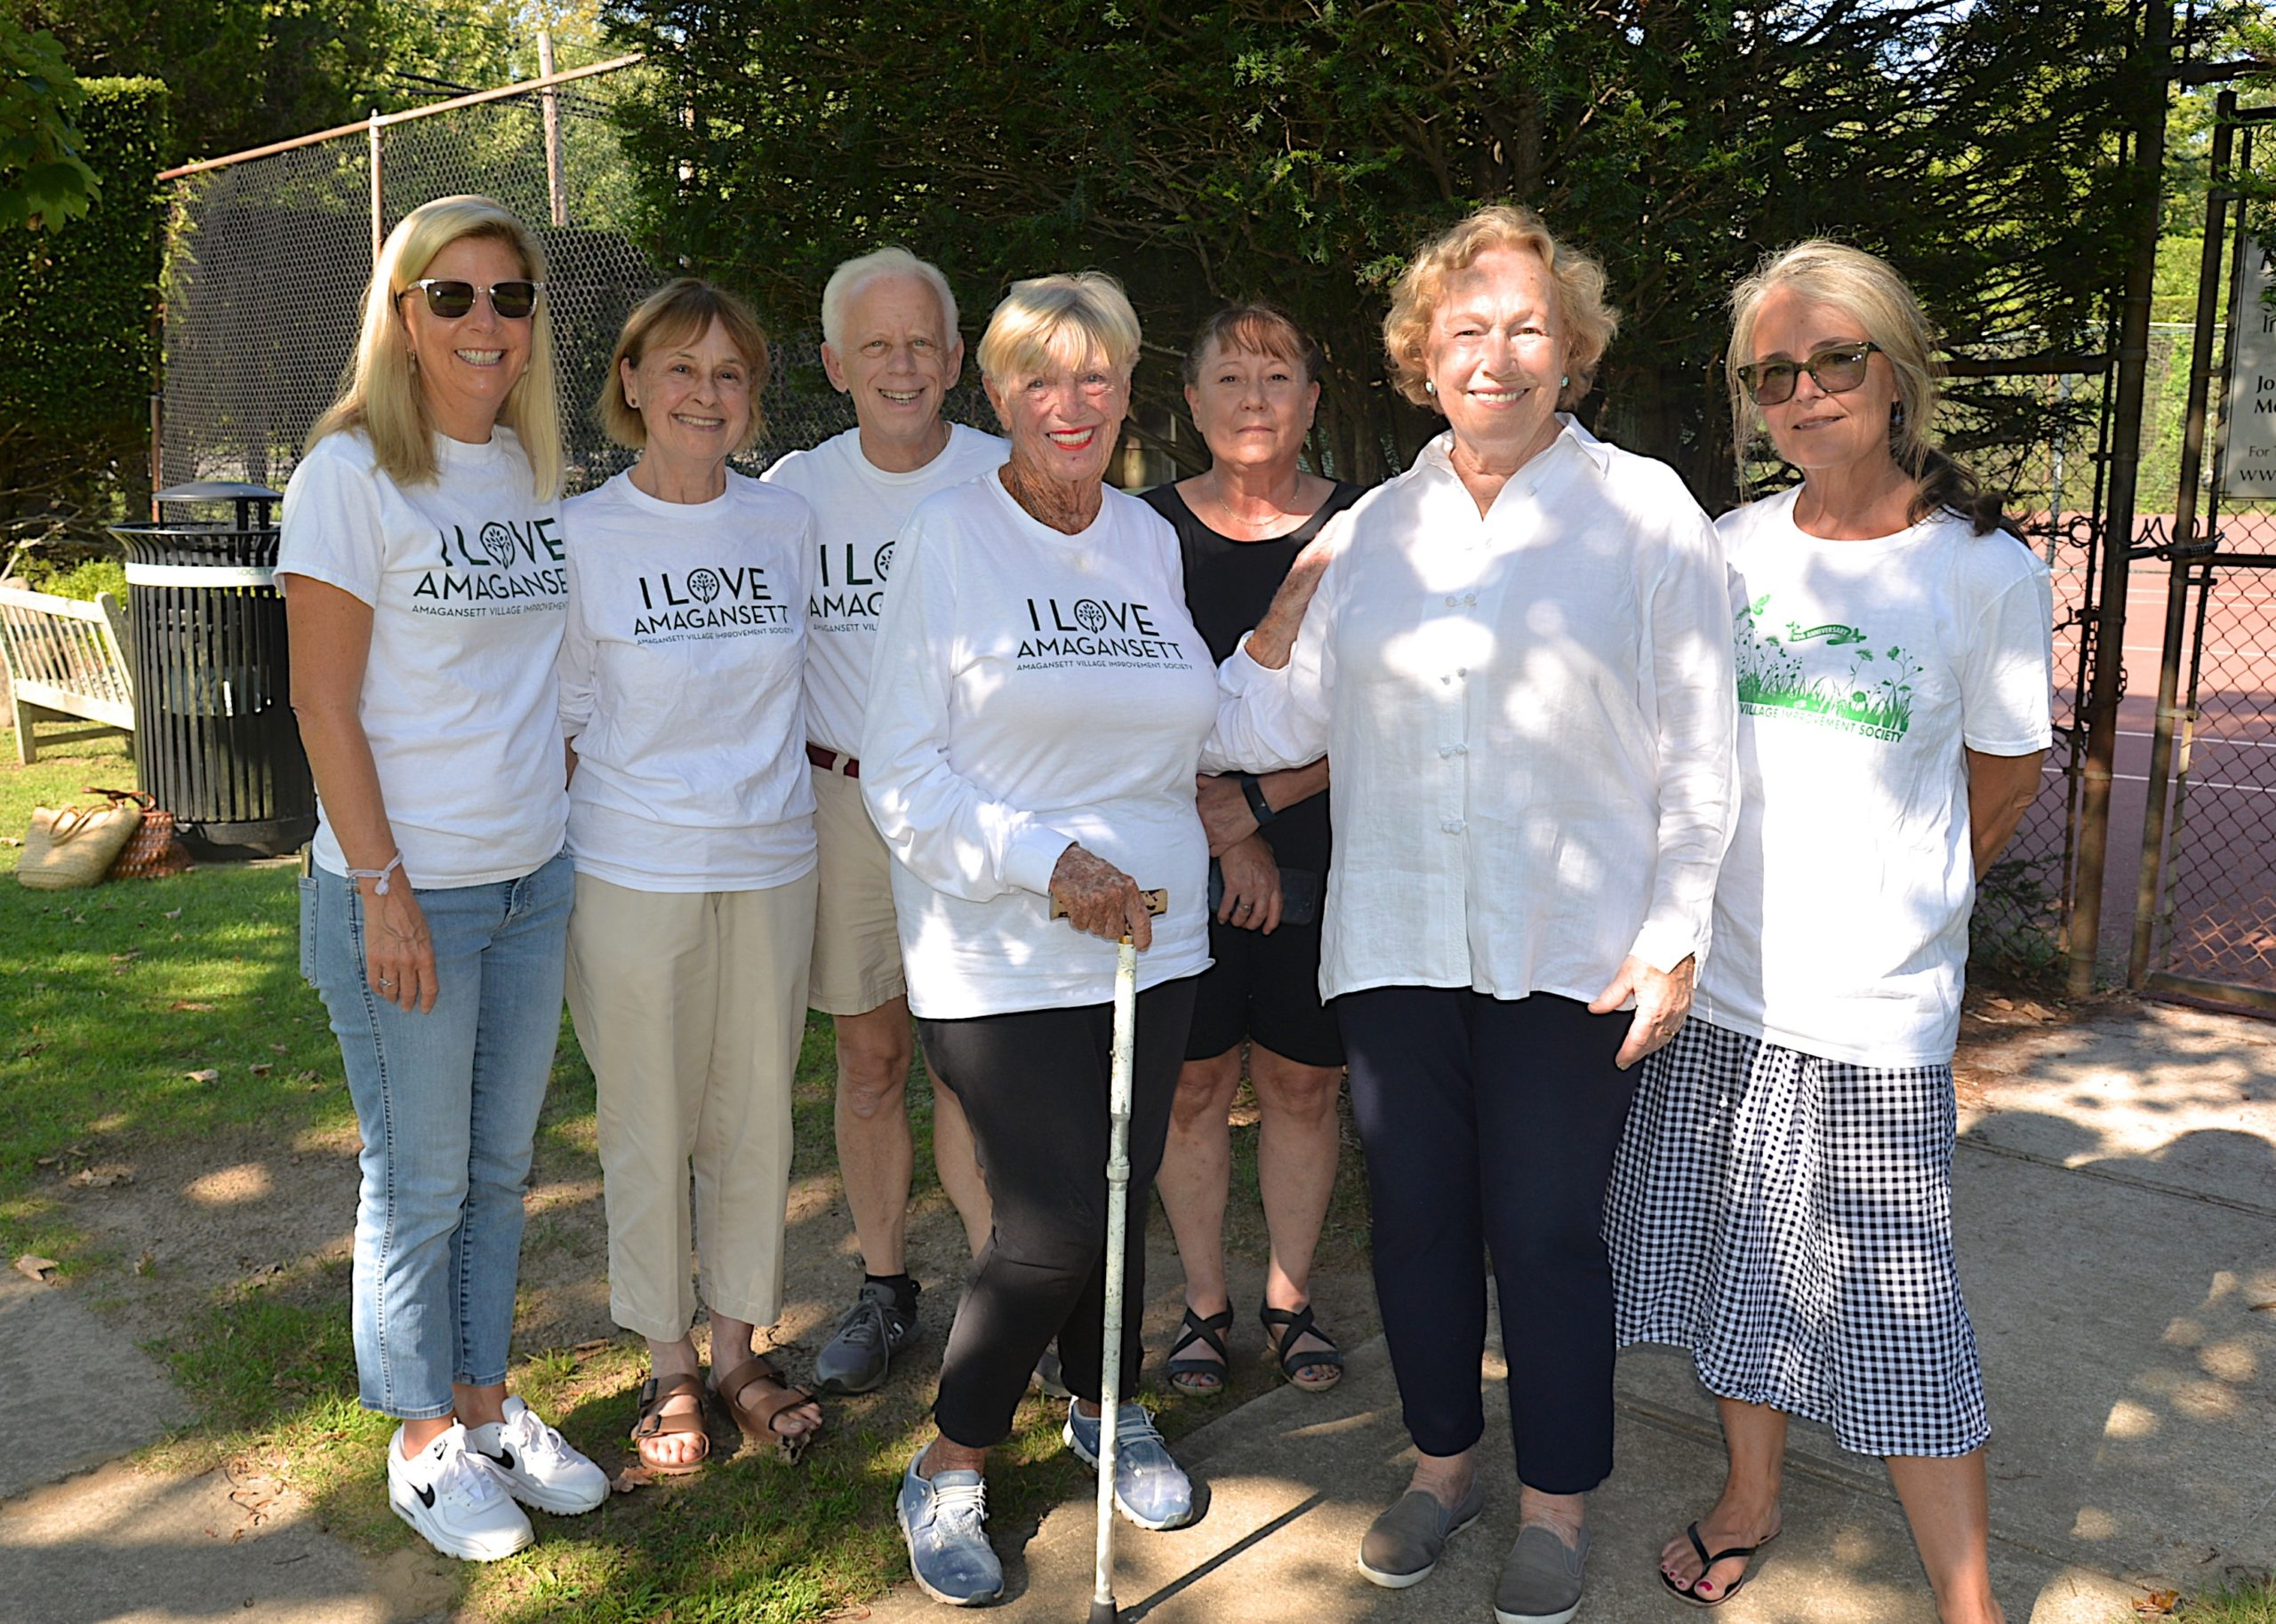 Members of the Amagansett Village Improvement Society, from left, Kim Slater, Shari Thompson, Victor Gelb, Cam Gelb, Joan Tulp, Susan Jaxheimer and Marguerite Gualtieri, are celebrating the group's centennial this fall.